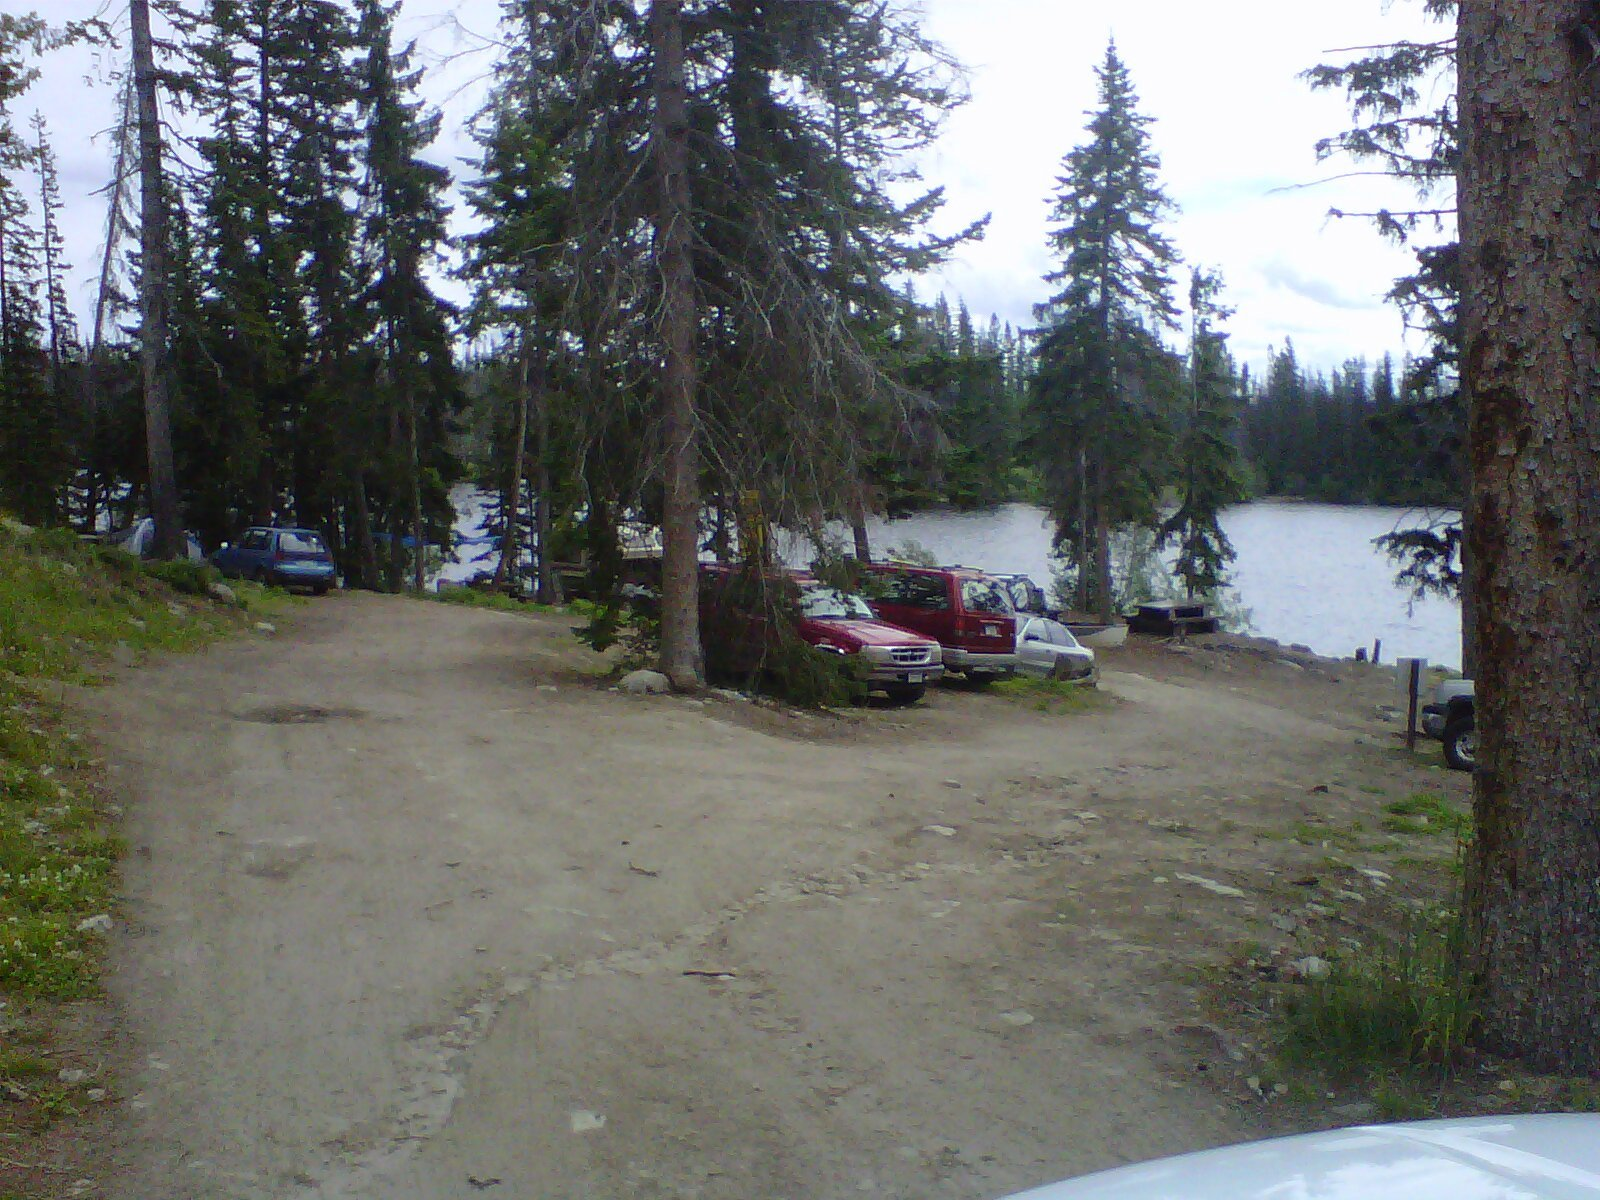 Free Camping at Oyama Lake Recreation Site - if you are willing to jockey for space.